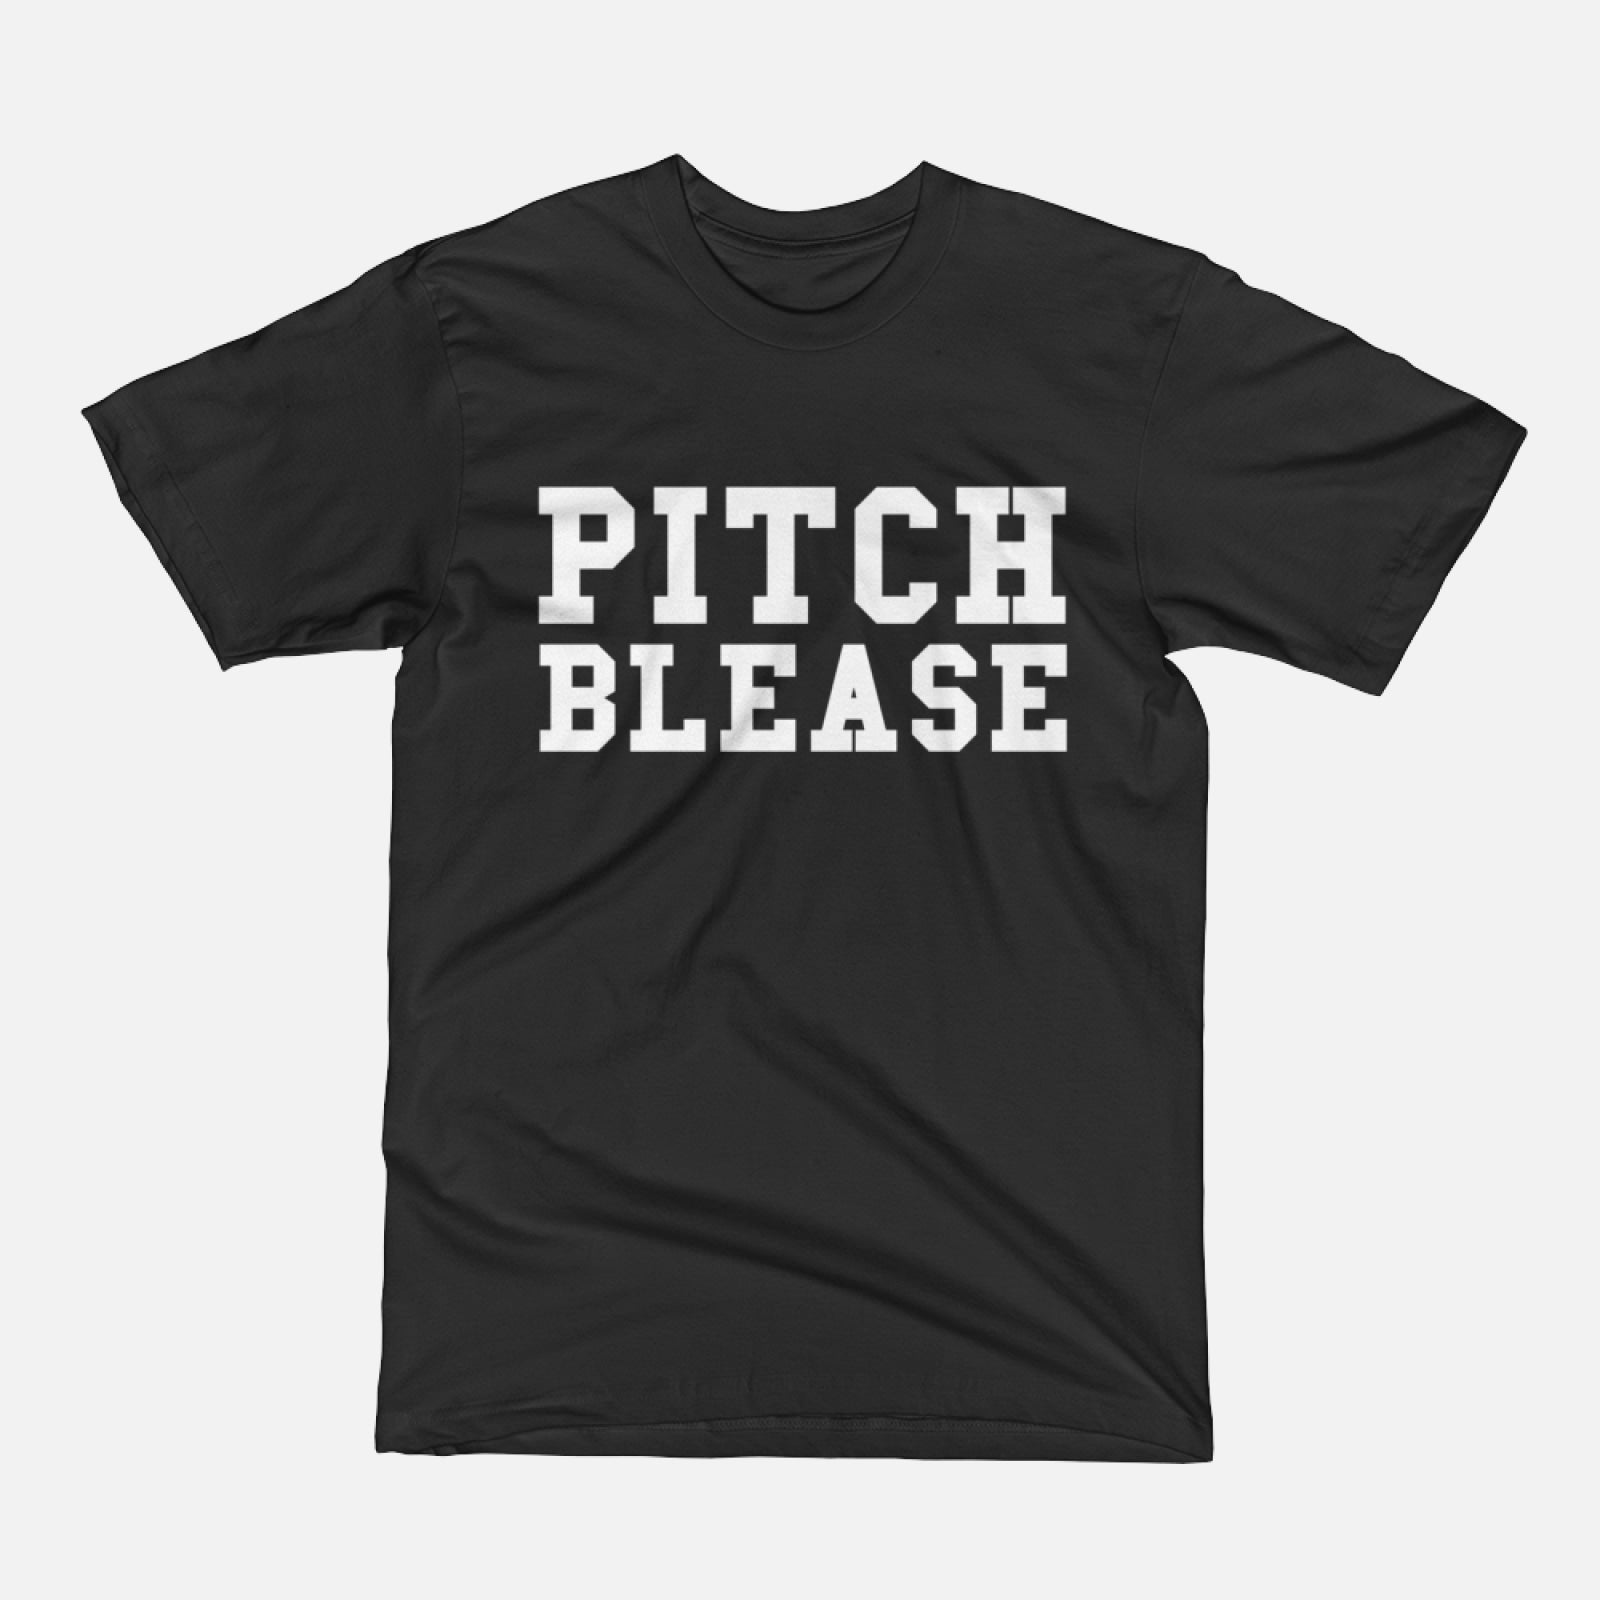 P!tch Blease T-Shirt Norvine